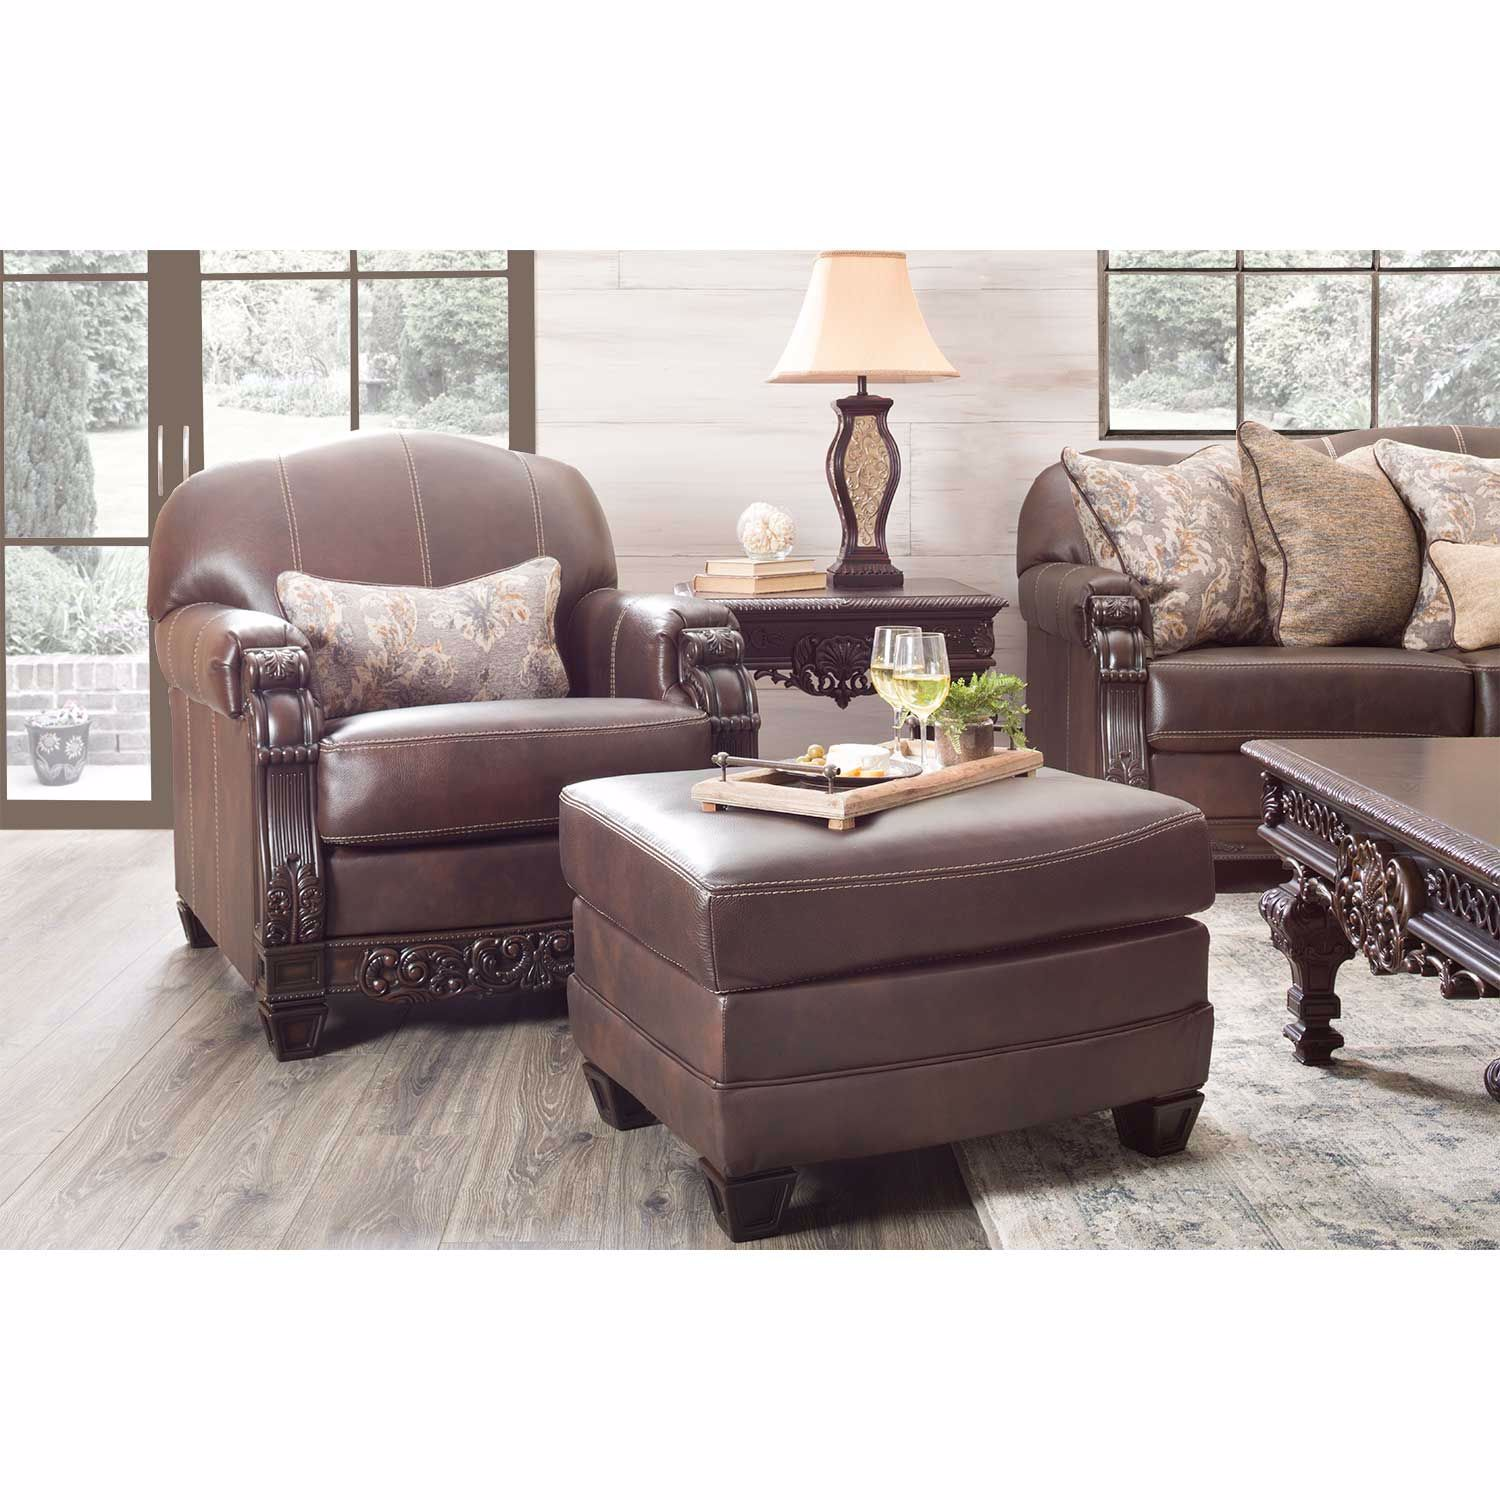 Picture of Embrook Chocolate Leather Ottoman